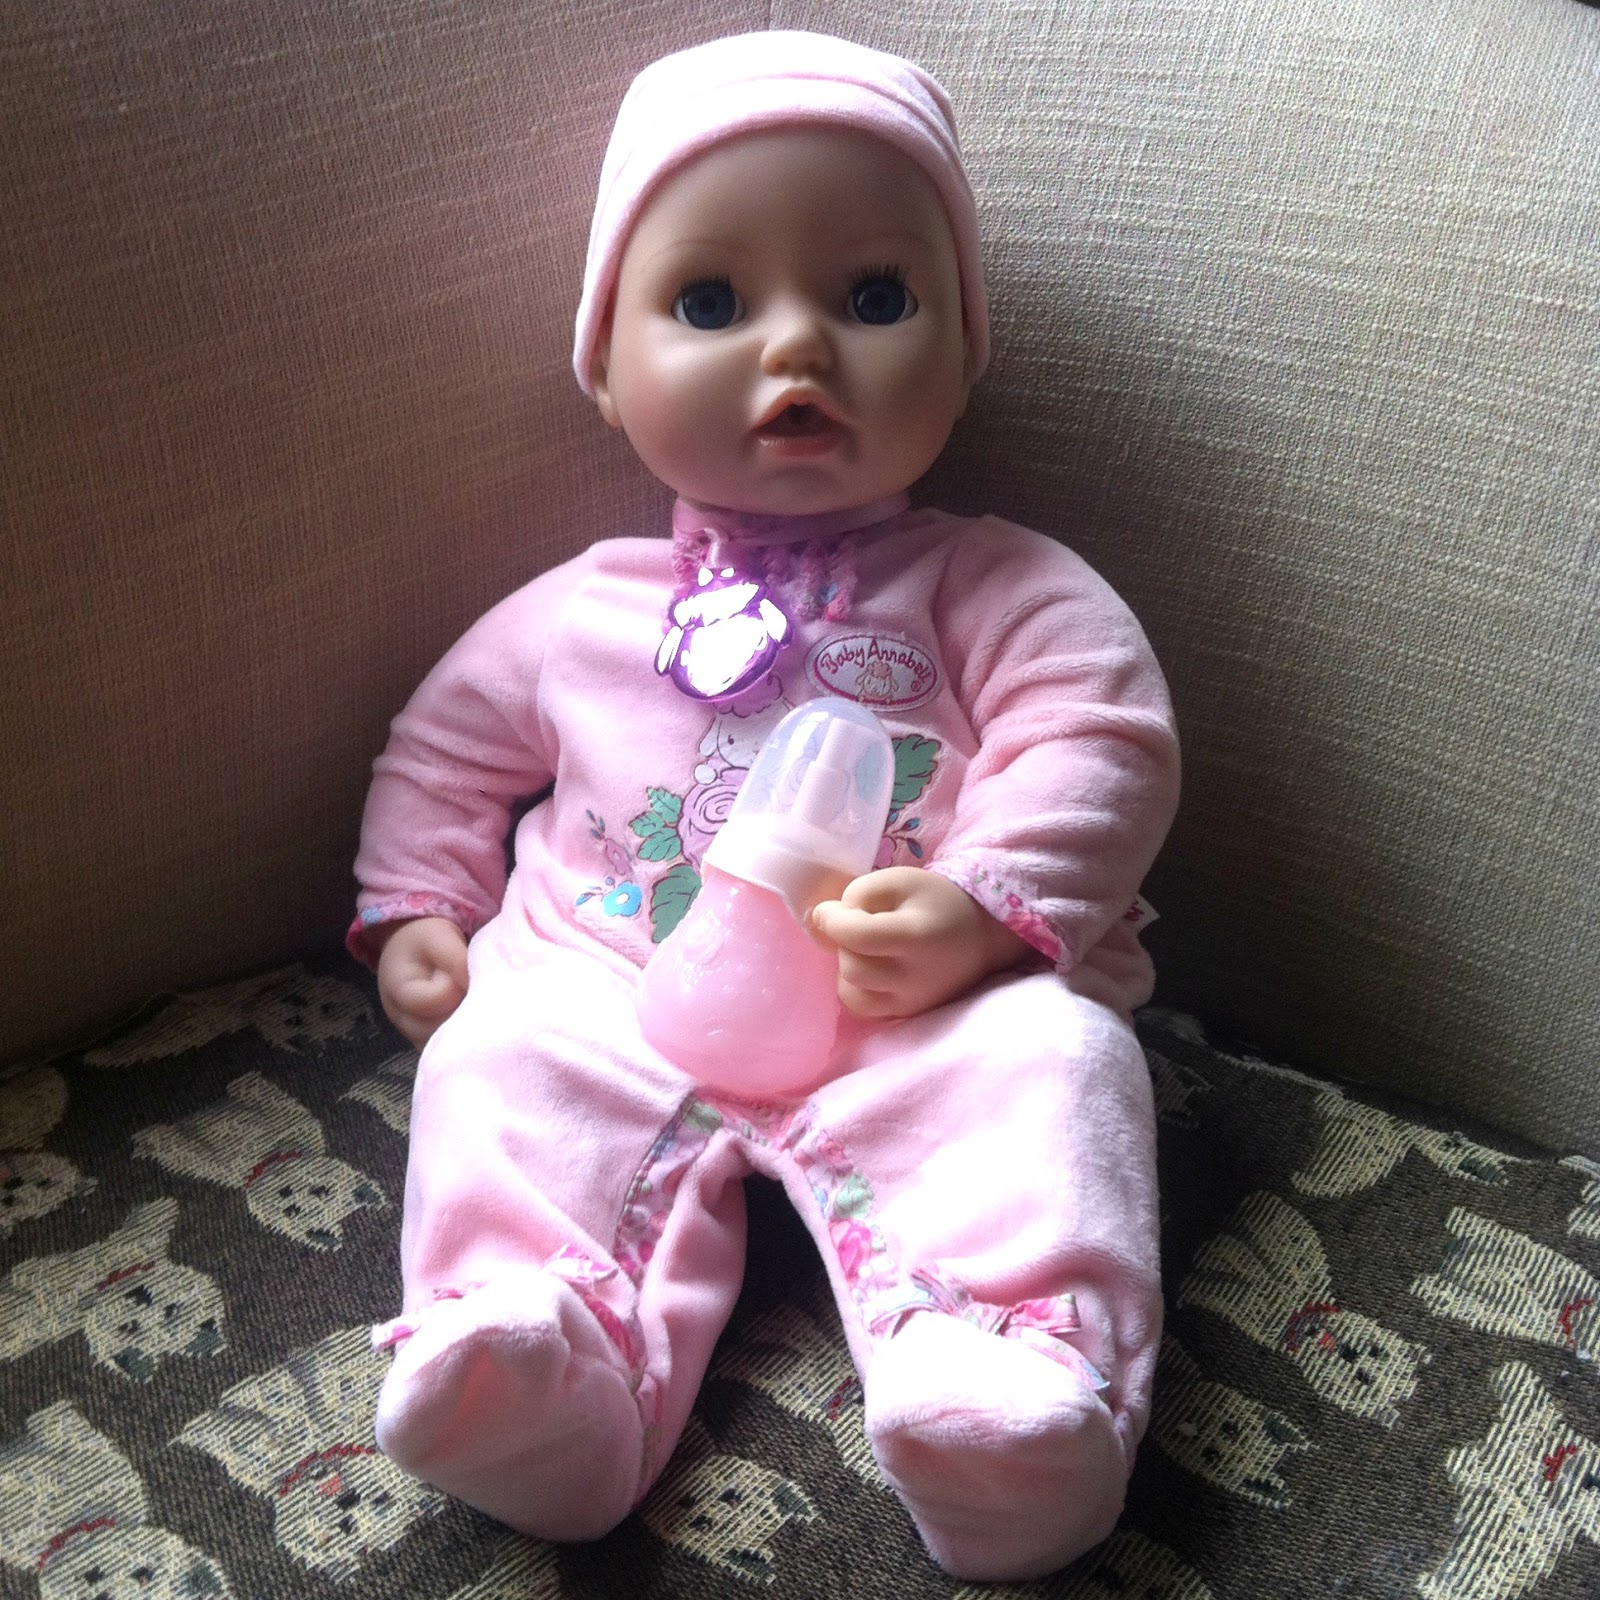 My Little L: Christmas gift guide: Baby Annabell doll